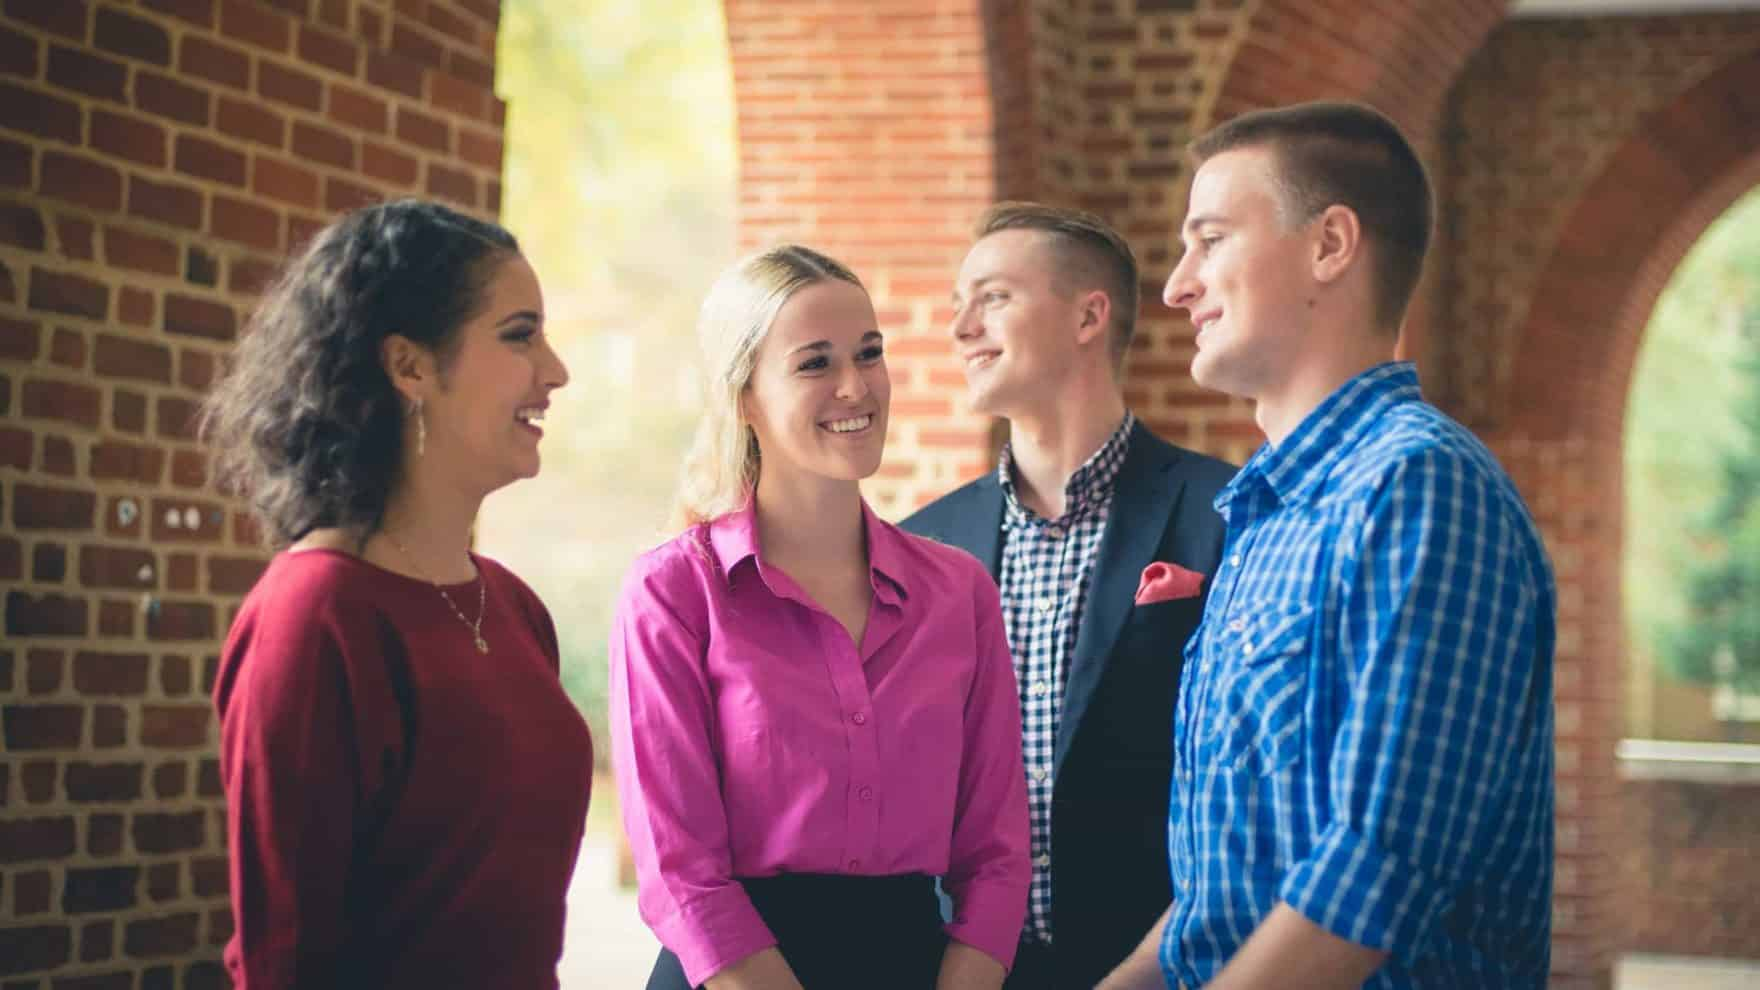 Students interact at Regent University, which offers psychology and counseling degree programs.